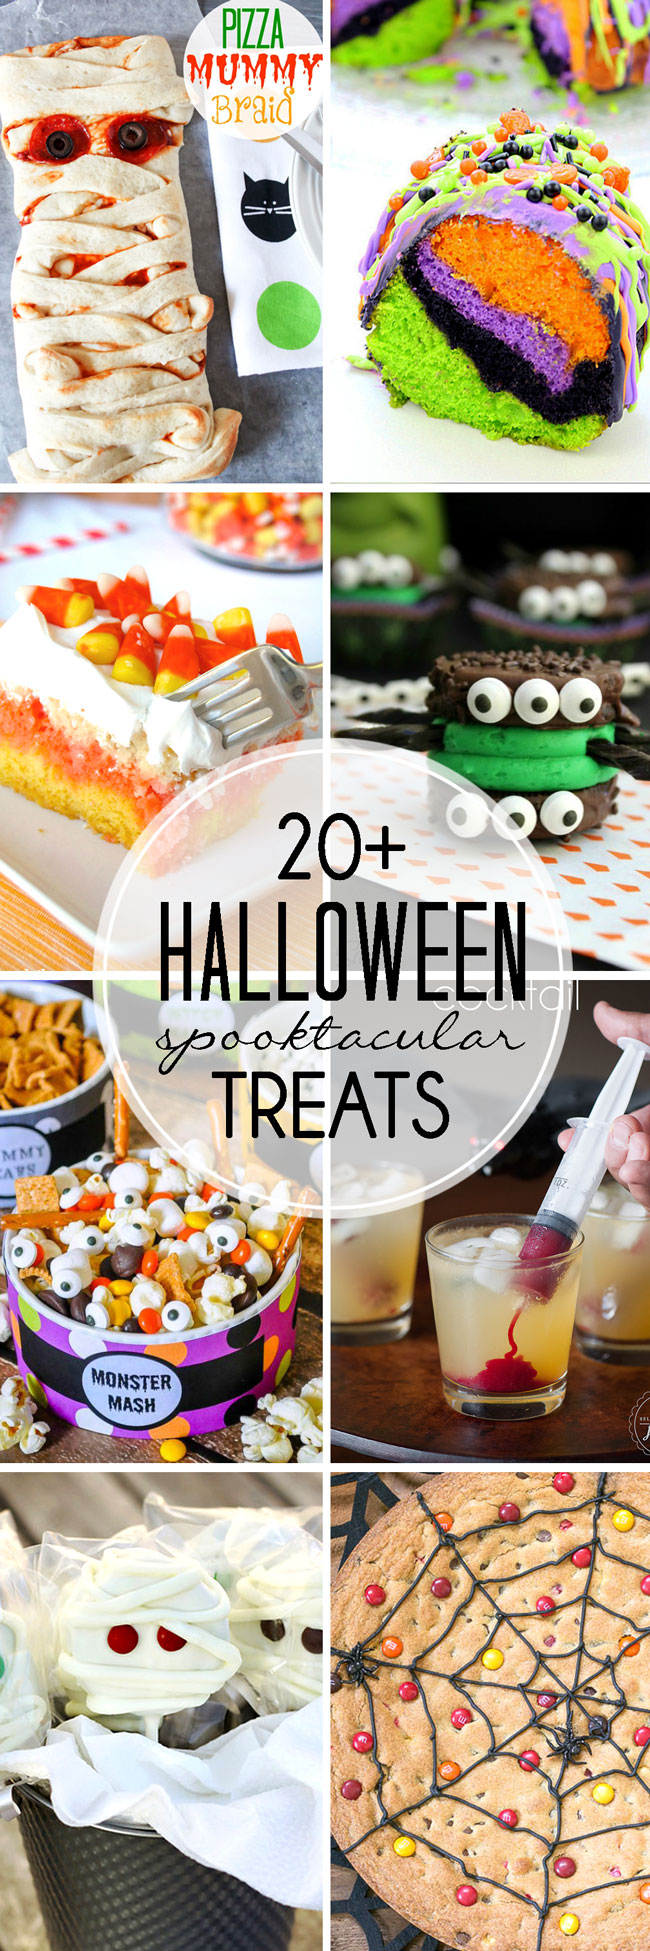 20+ Halloween Treats - spooky desserts, dips, and even a main dish!